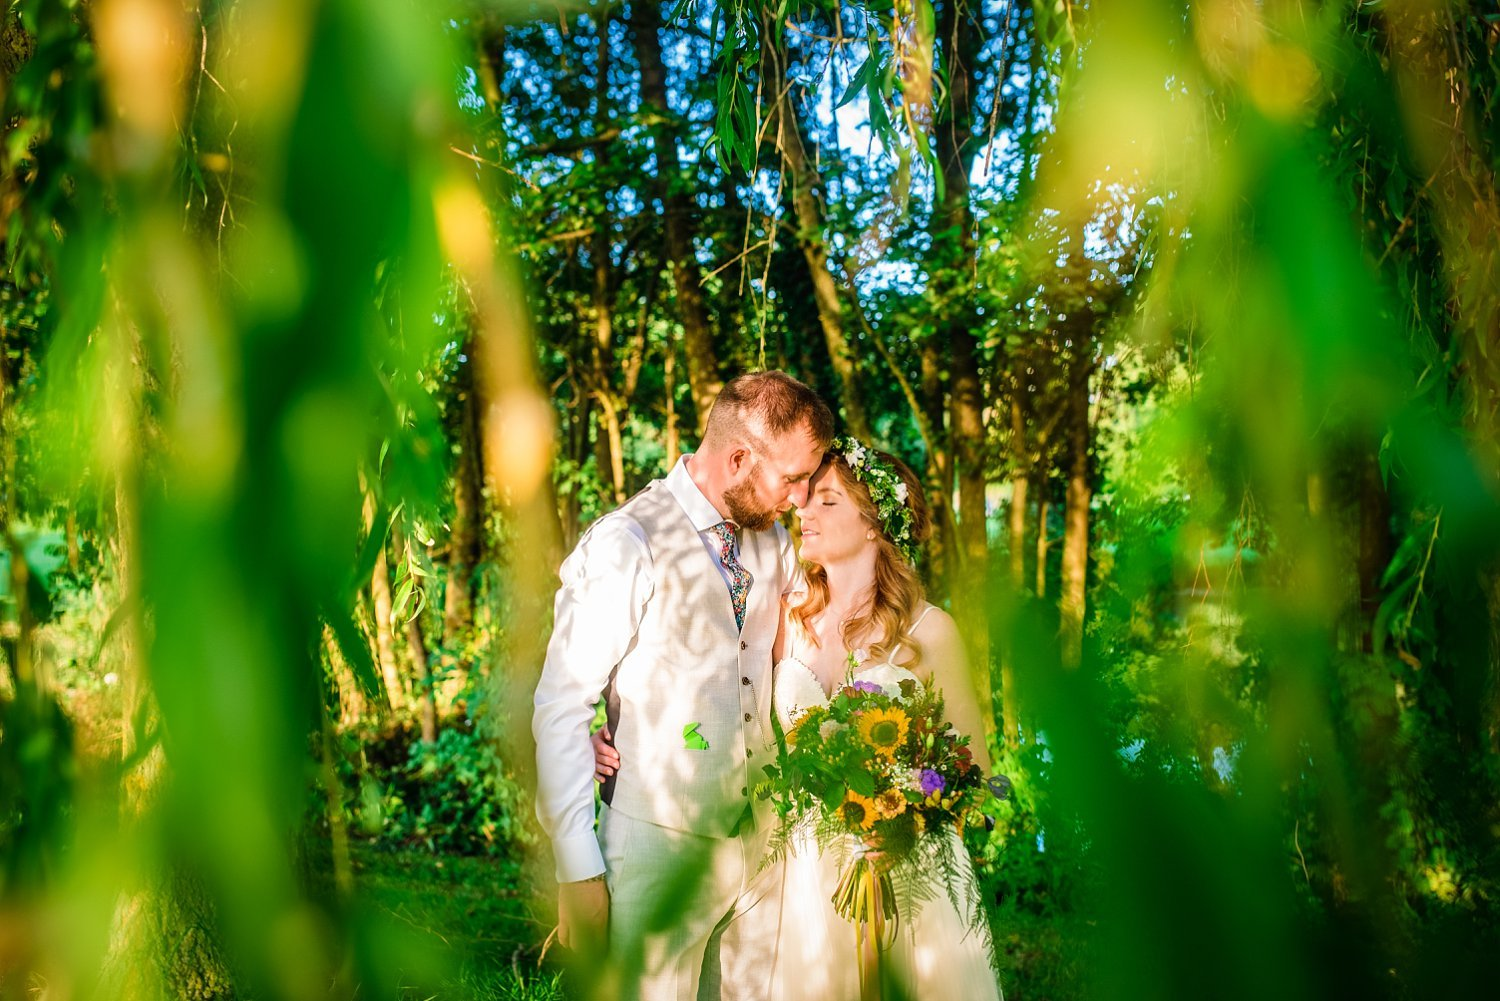 Farnham Wedding Photographer - husband and wife are keeping their heads together